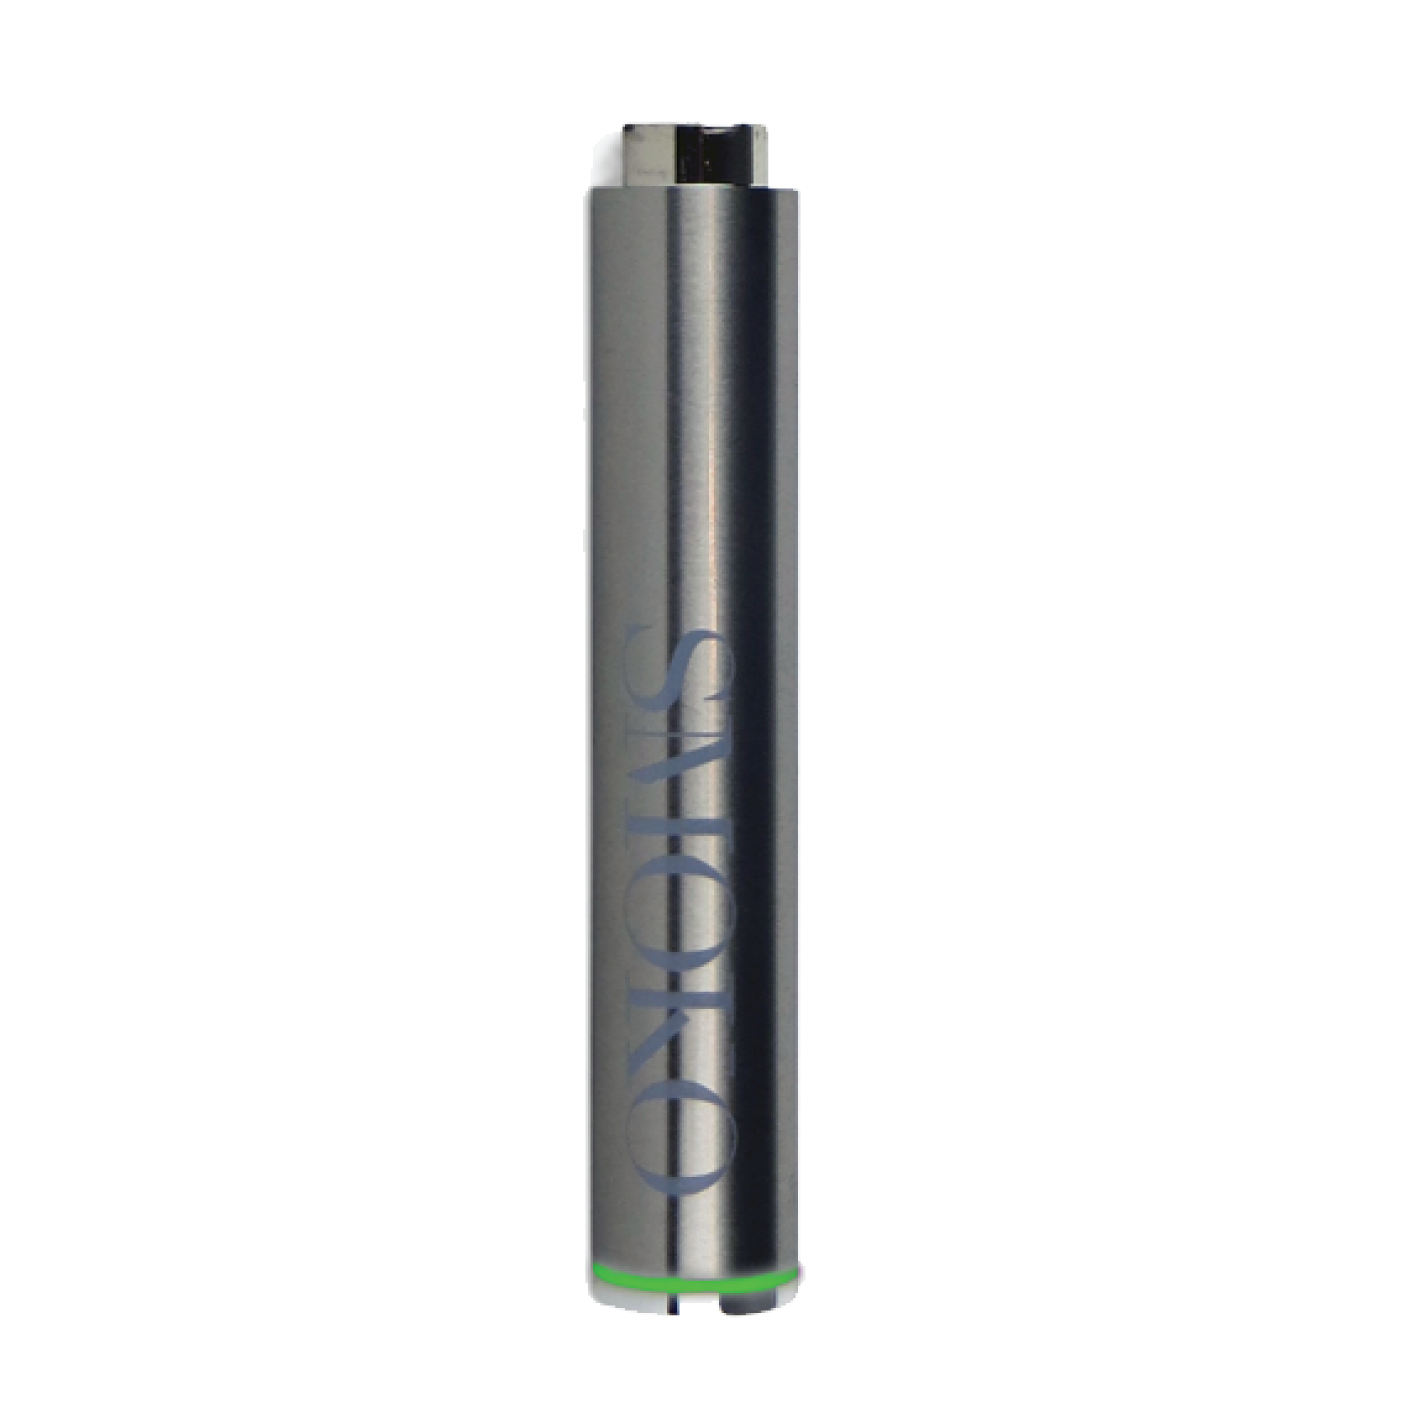 SMOKO rechargeable vape battery